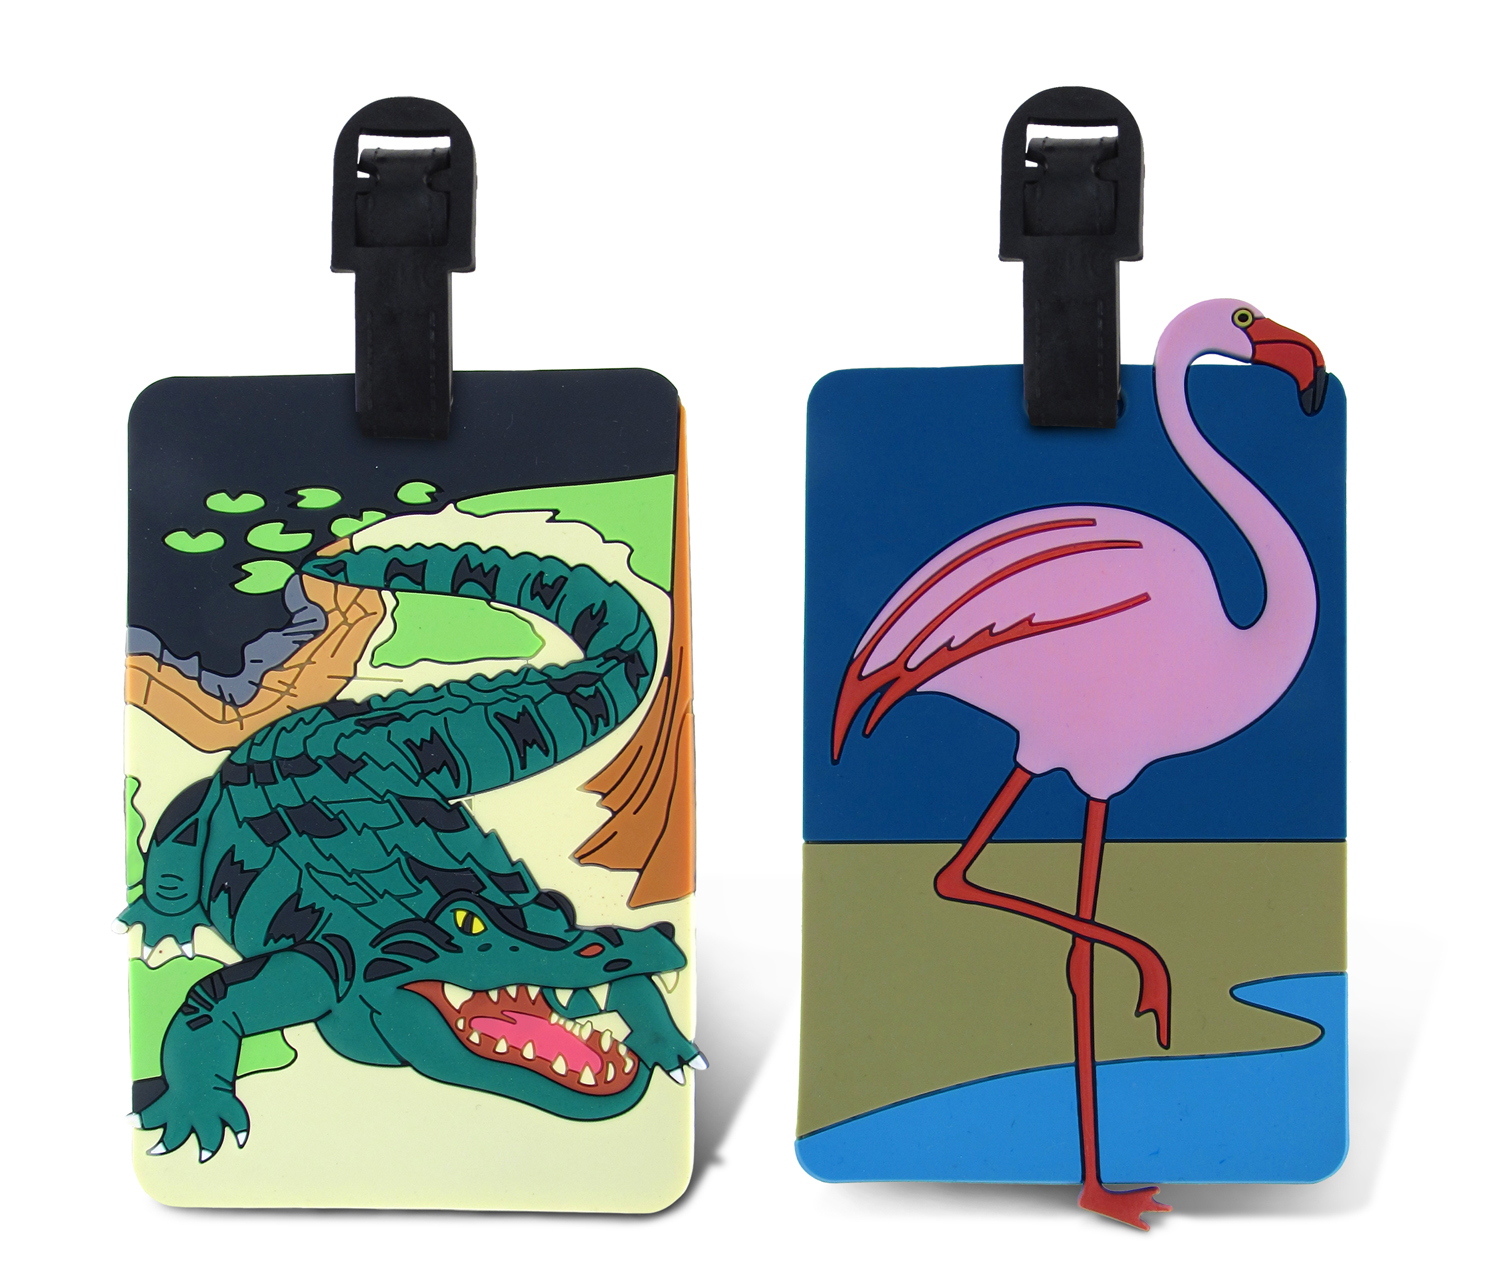 Puzzled Taggage Flamingo And Wild Gator Luggage Tag 3.5X5...